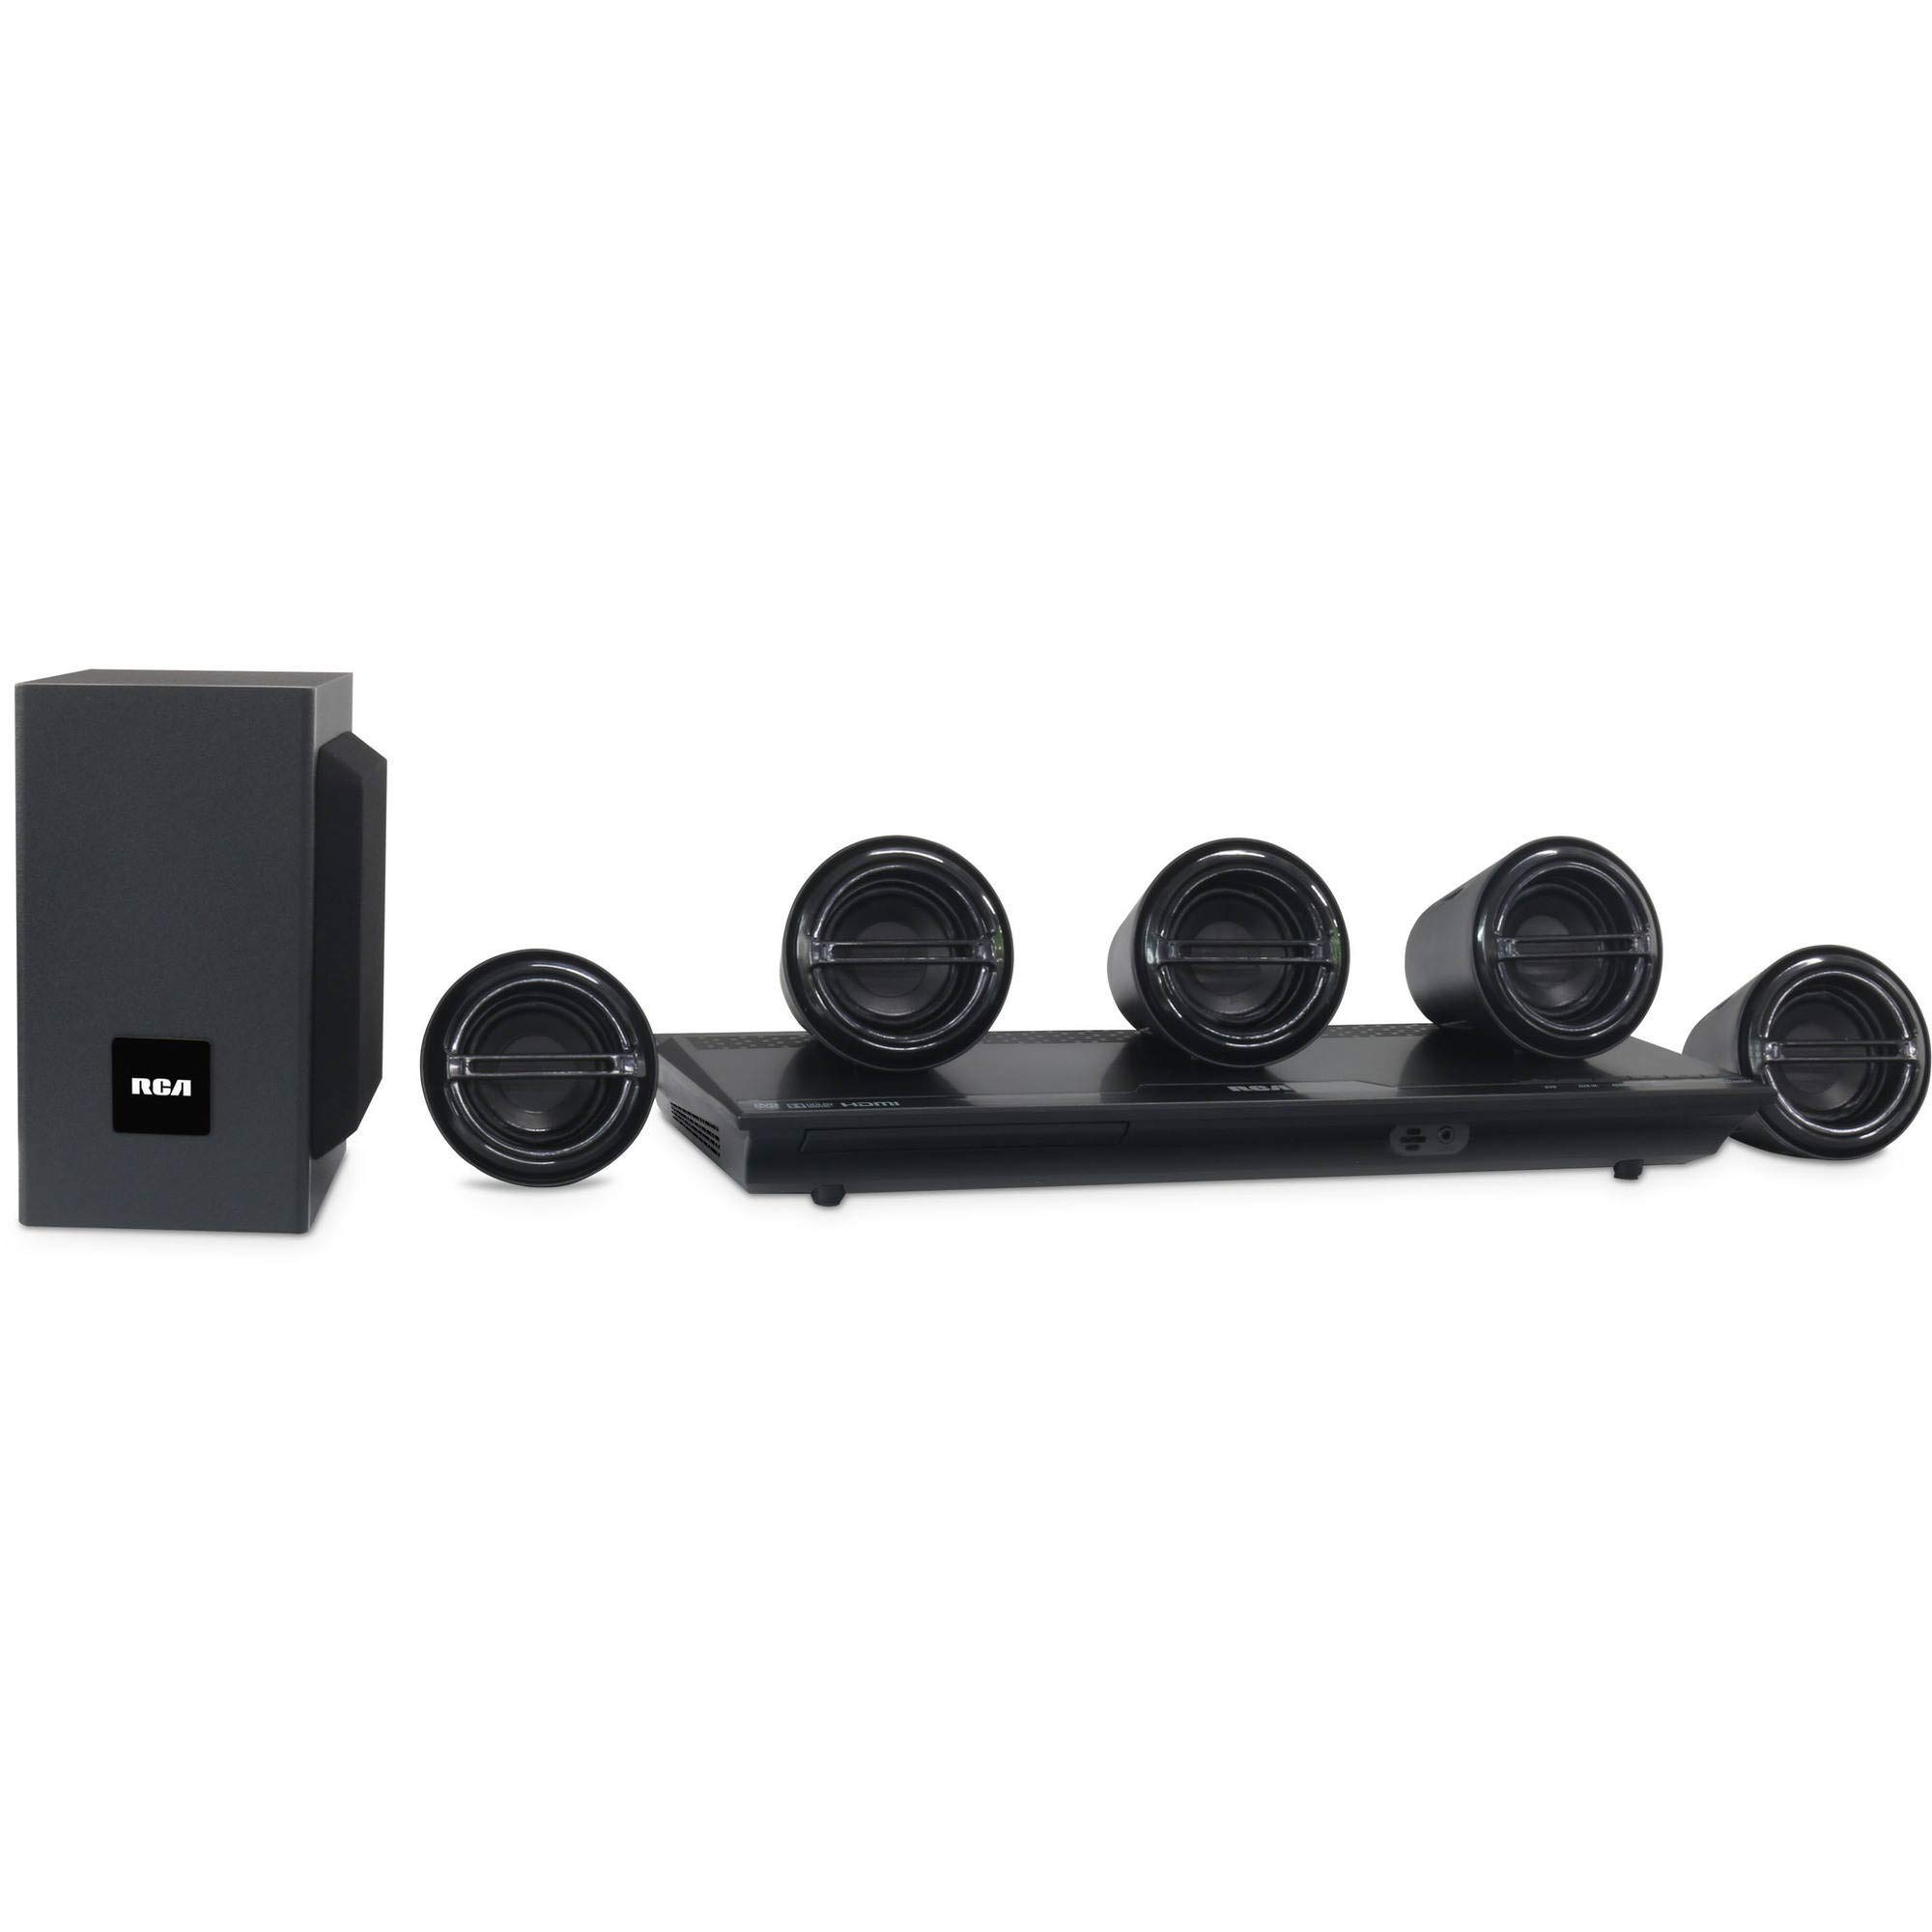 Rca DVD Home Theater System Hdmi 1080p Output 300 W 5.1 Rtd3277h